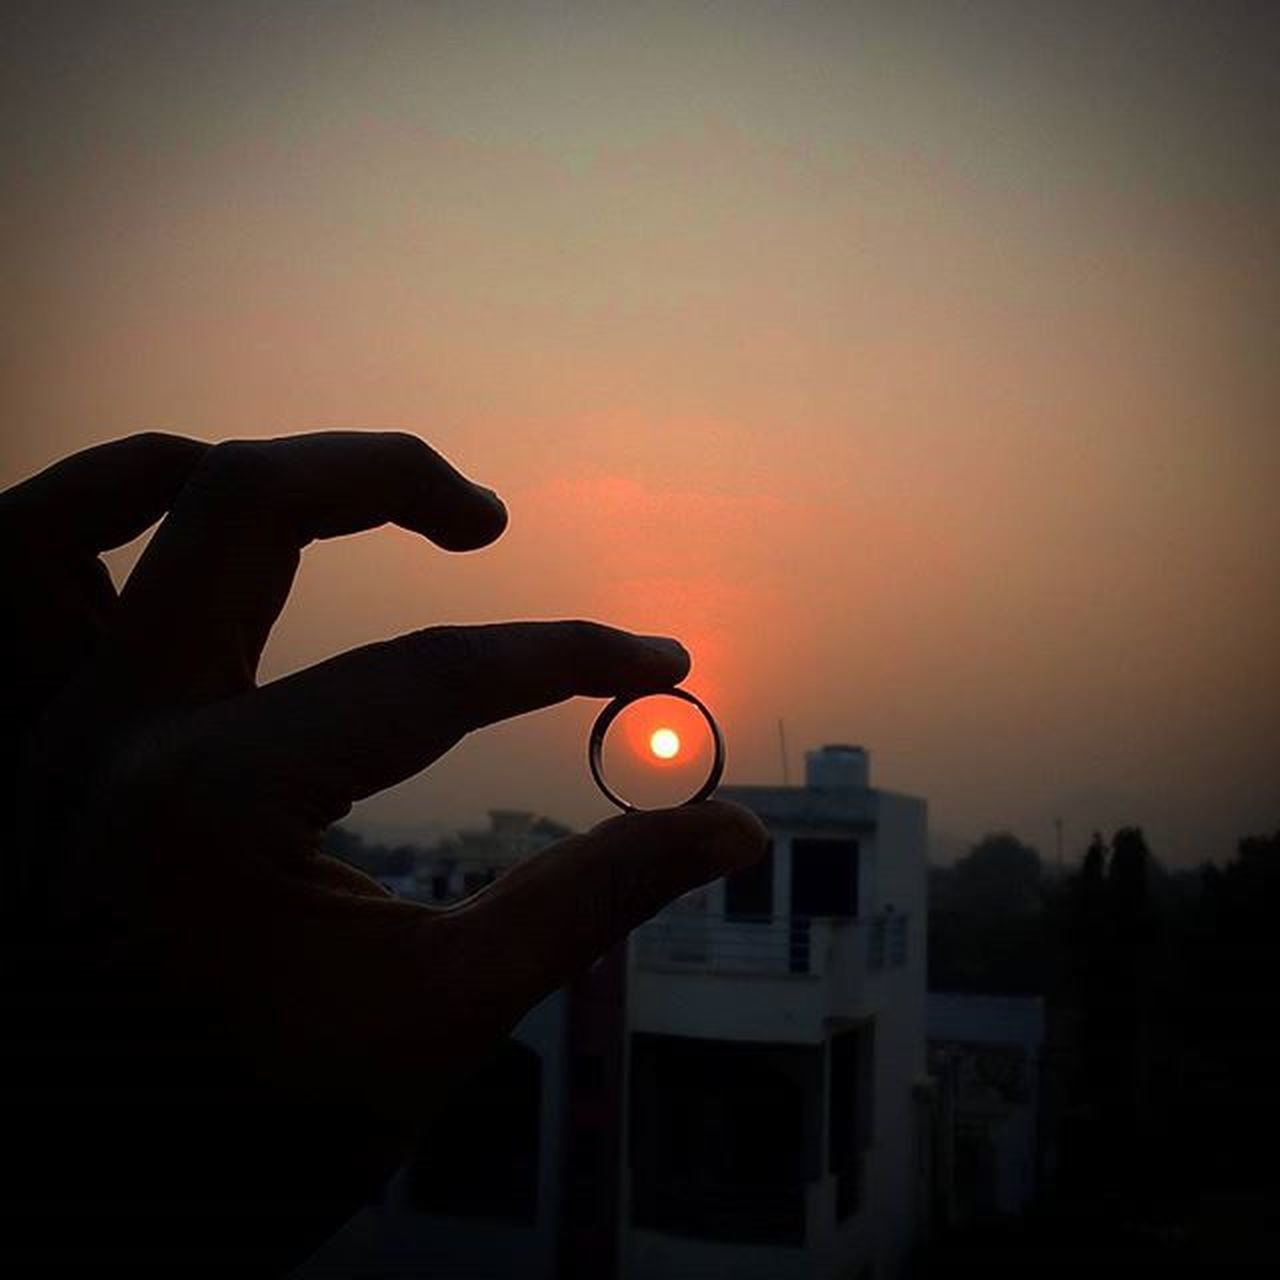 Ring Sunset Sun_in_ring @sunrise_and_sunsets @exclusive.sunset @sunrise_sunset_heaven Shots Proshots RingShotOut Pixelpanda_india Second_professional_assignment Sun_cic Cubicle2tent More_to_come Soi Soi_today Igers_wanderlust True_photo_lover Ig_today Igphotomagic Igworldclub SunsetSnippers Sunset NewTry_NewLens 😄😄 Wanderlust_sun Outbounderlife